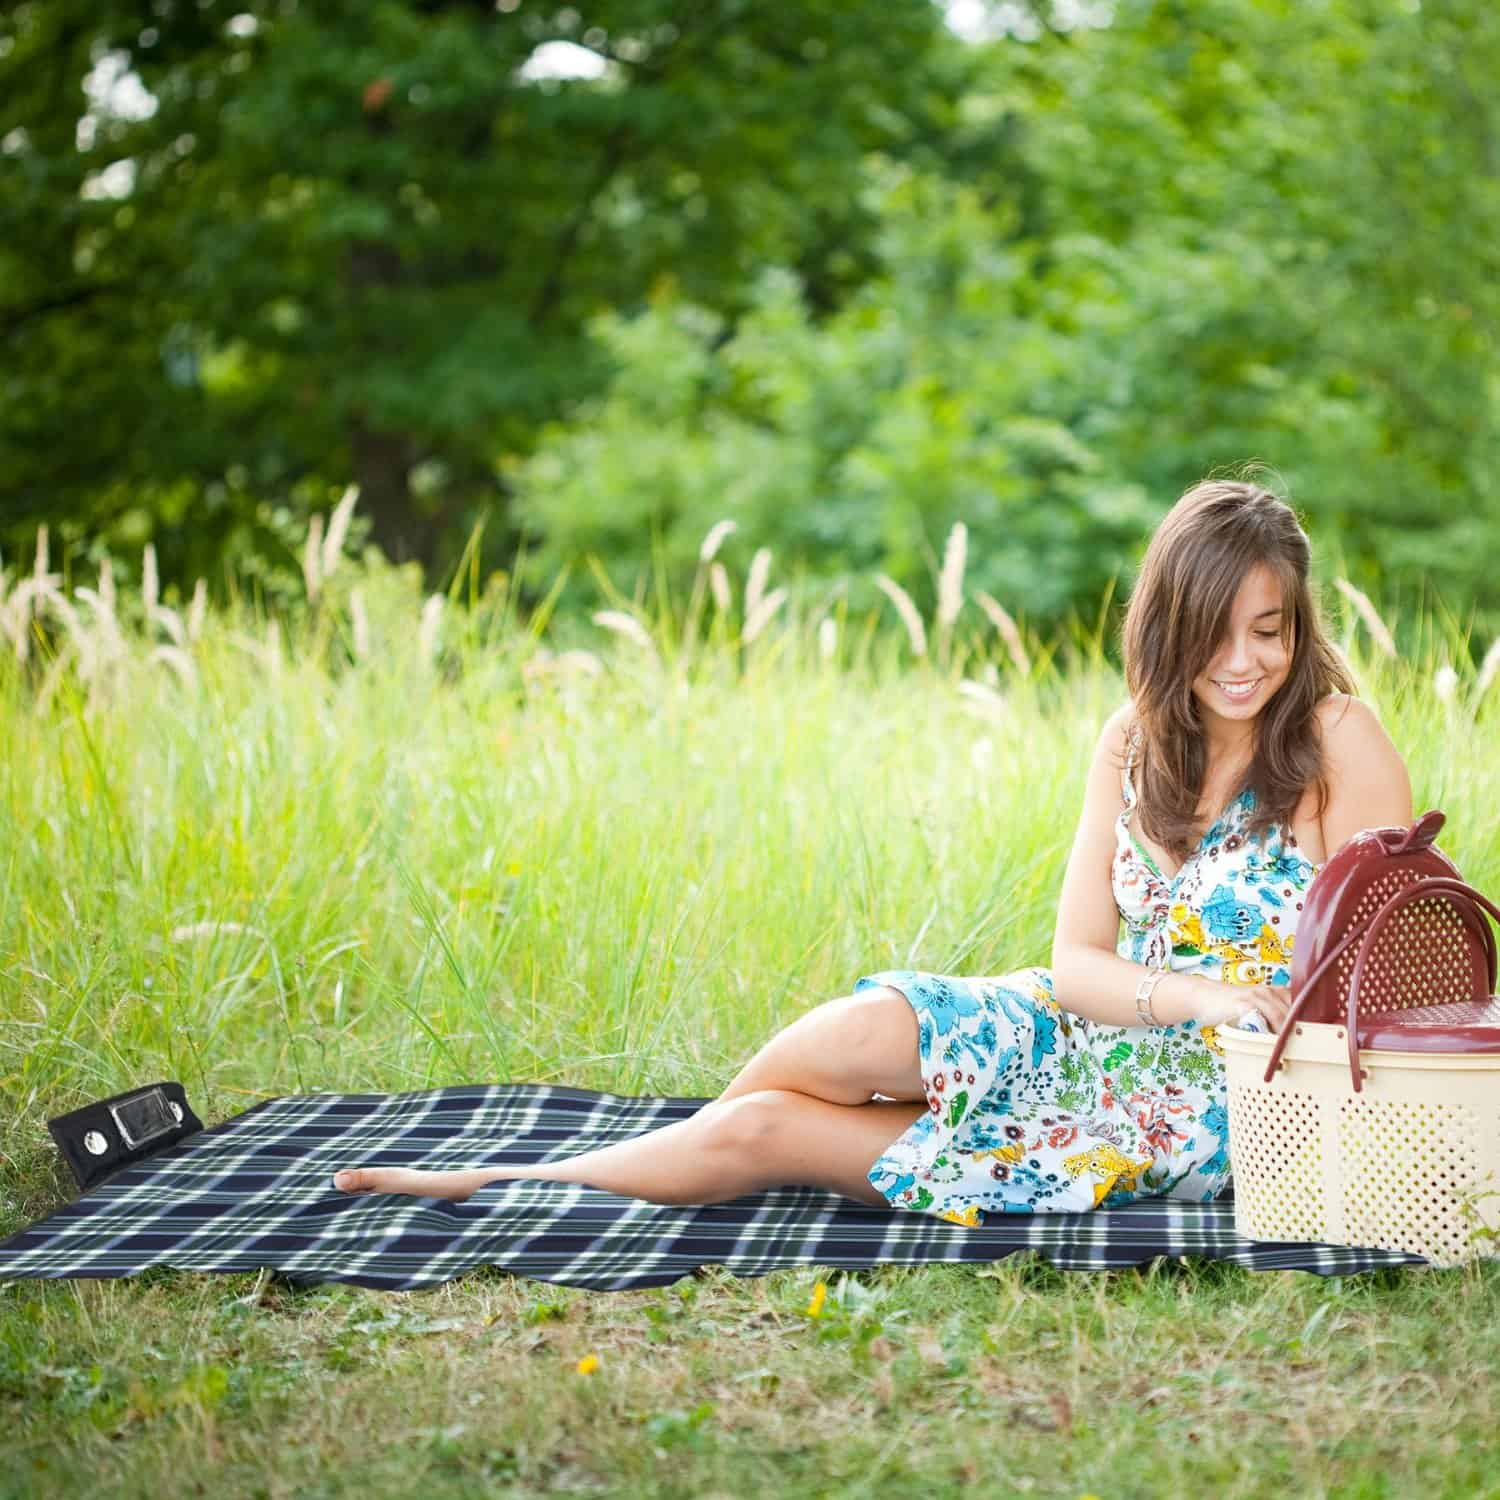 Speaker and picnic blanket in one!